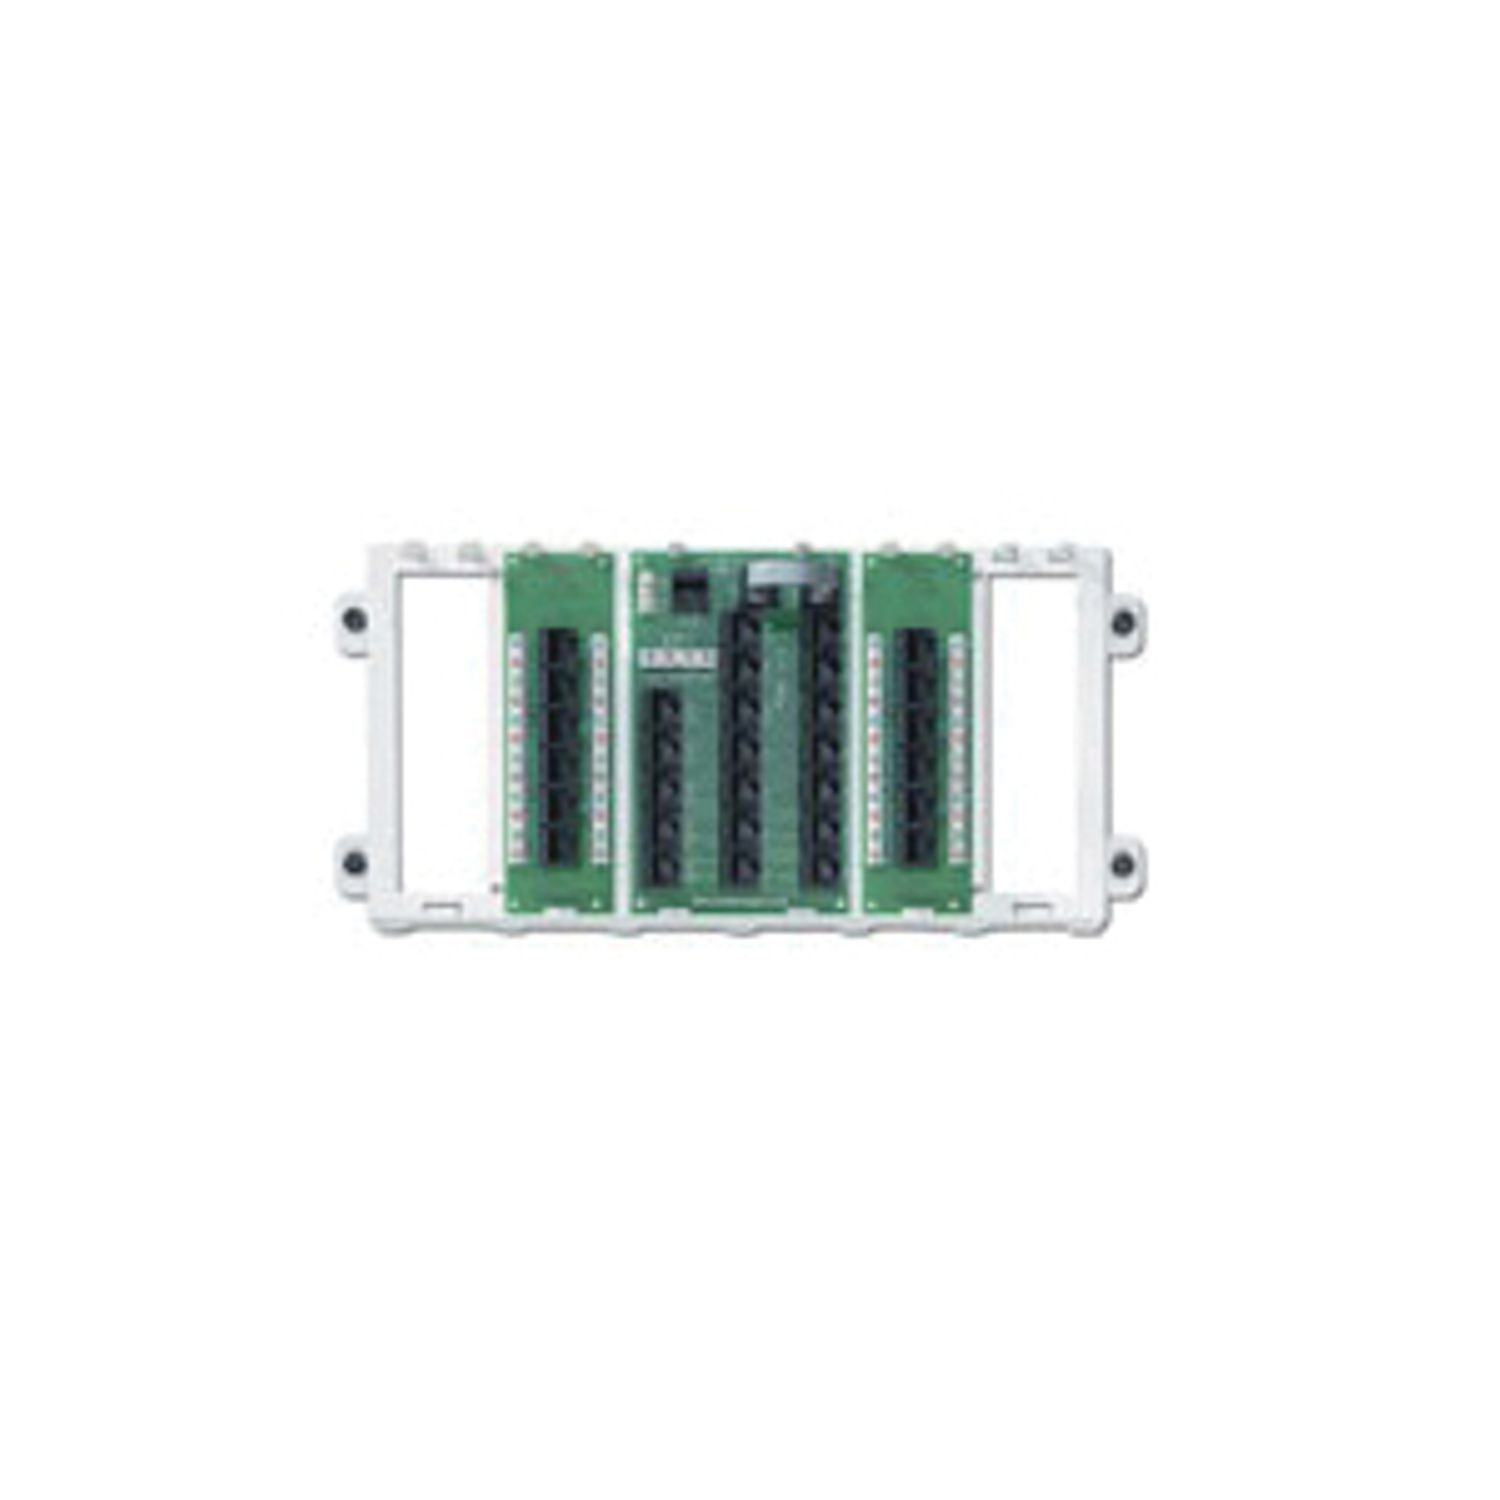 Leviton Structured Media Panel For Power Wiring Ups 1500x1500